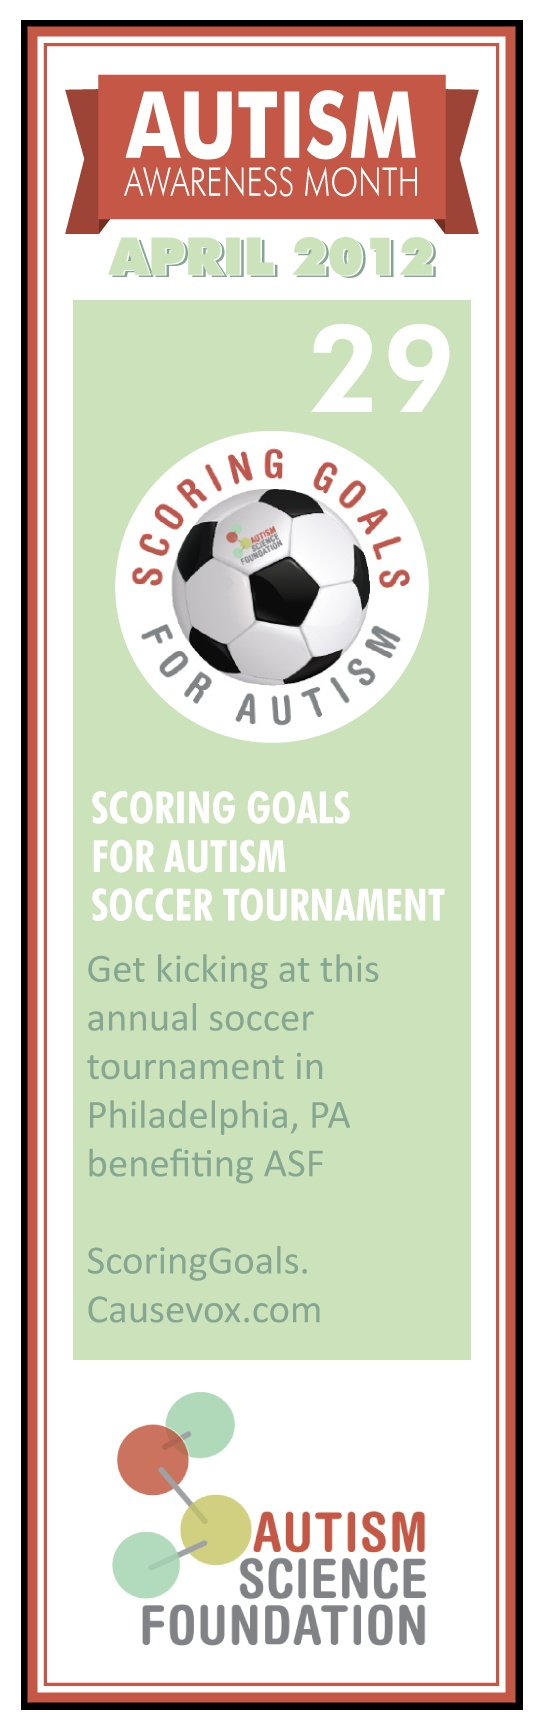 Today is the Scoring Goals to Autism soccer tournament in Philadelphia, PA. Make last minute pledge to support autism research at www.scoringgoals.causevox.com!  #autism #soccer #fitness #event #autismawarenessmonth